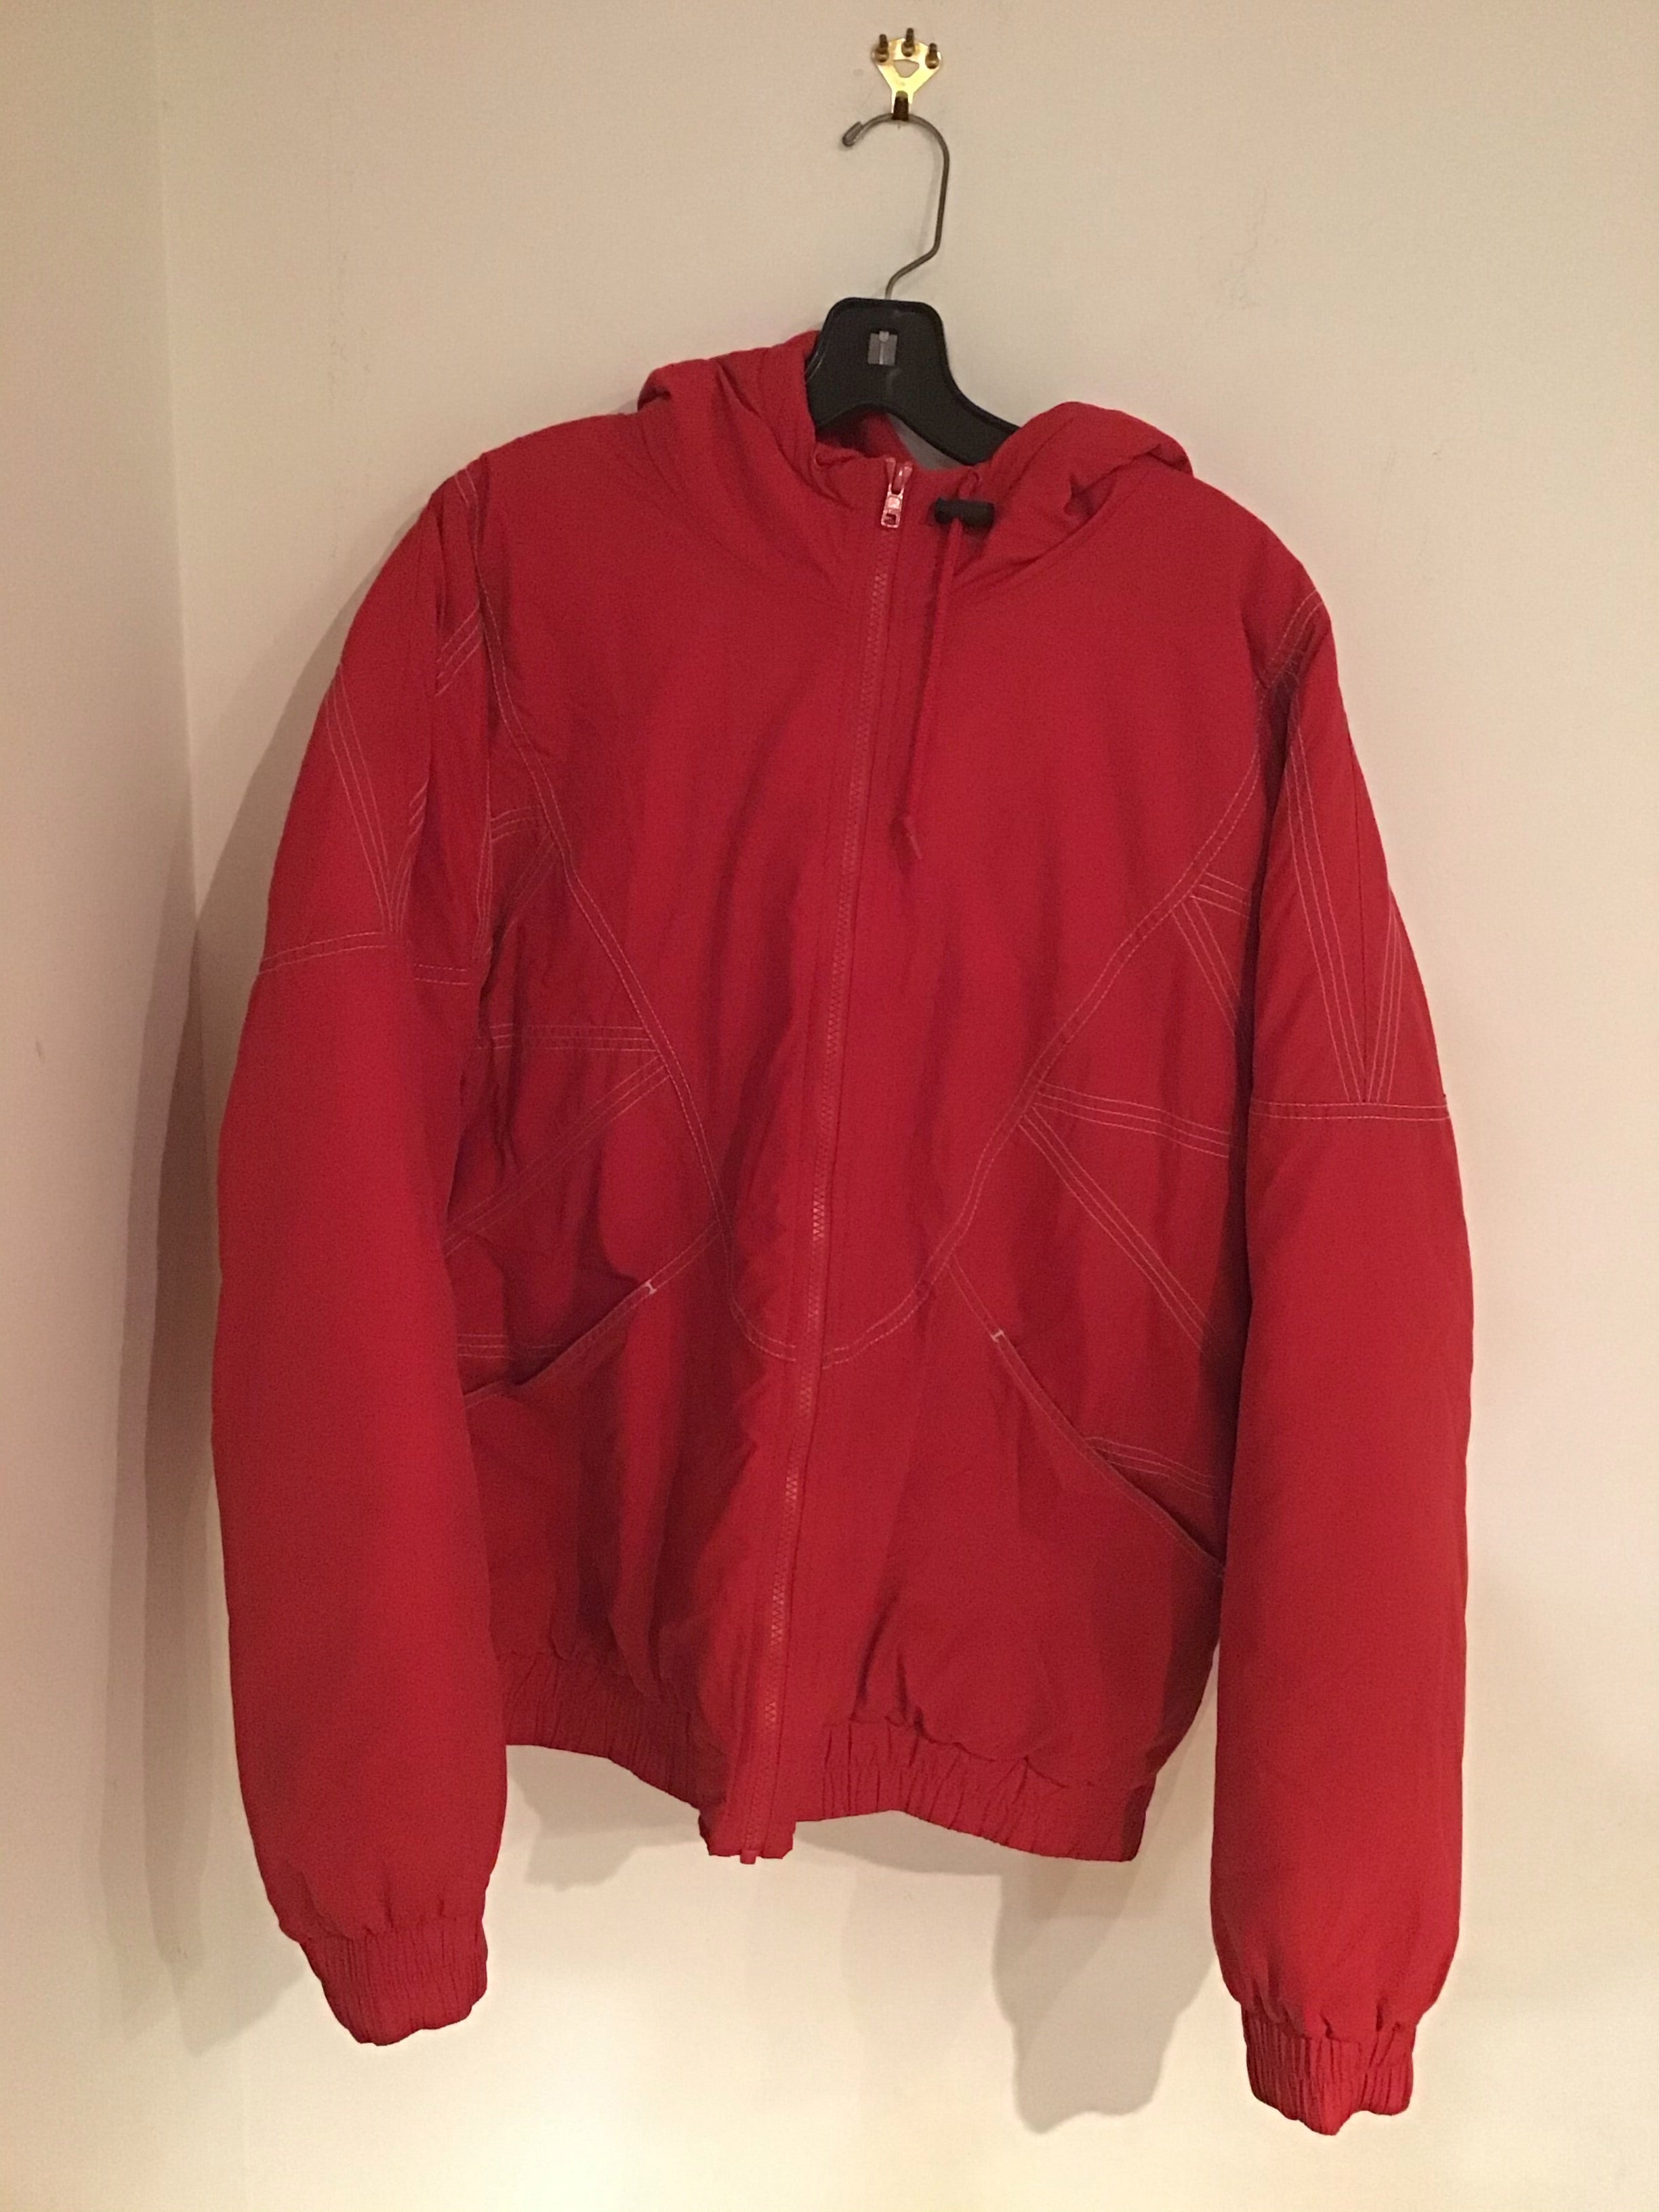 Supreme men's windbreaker coat in bold red